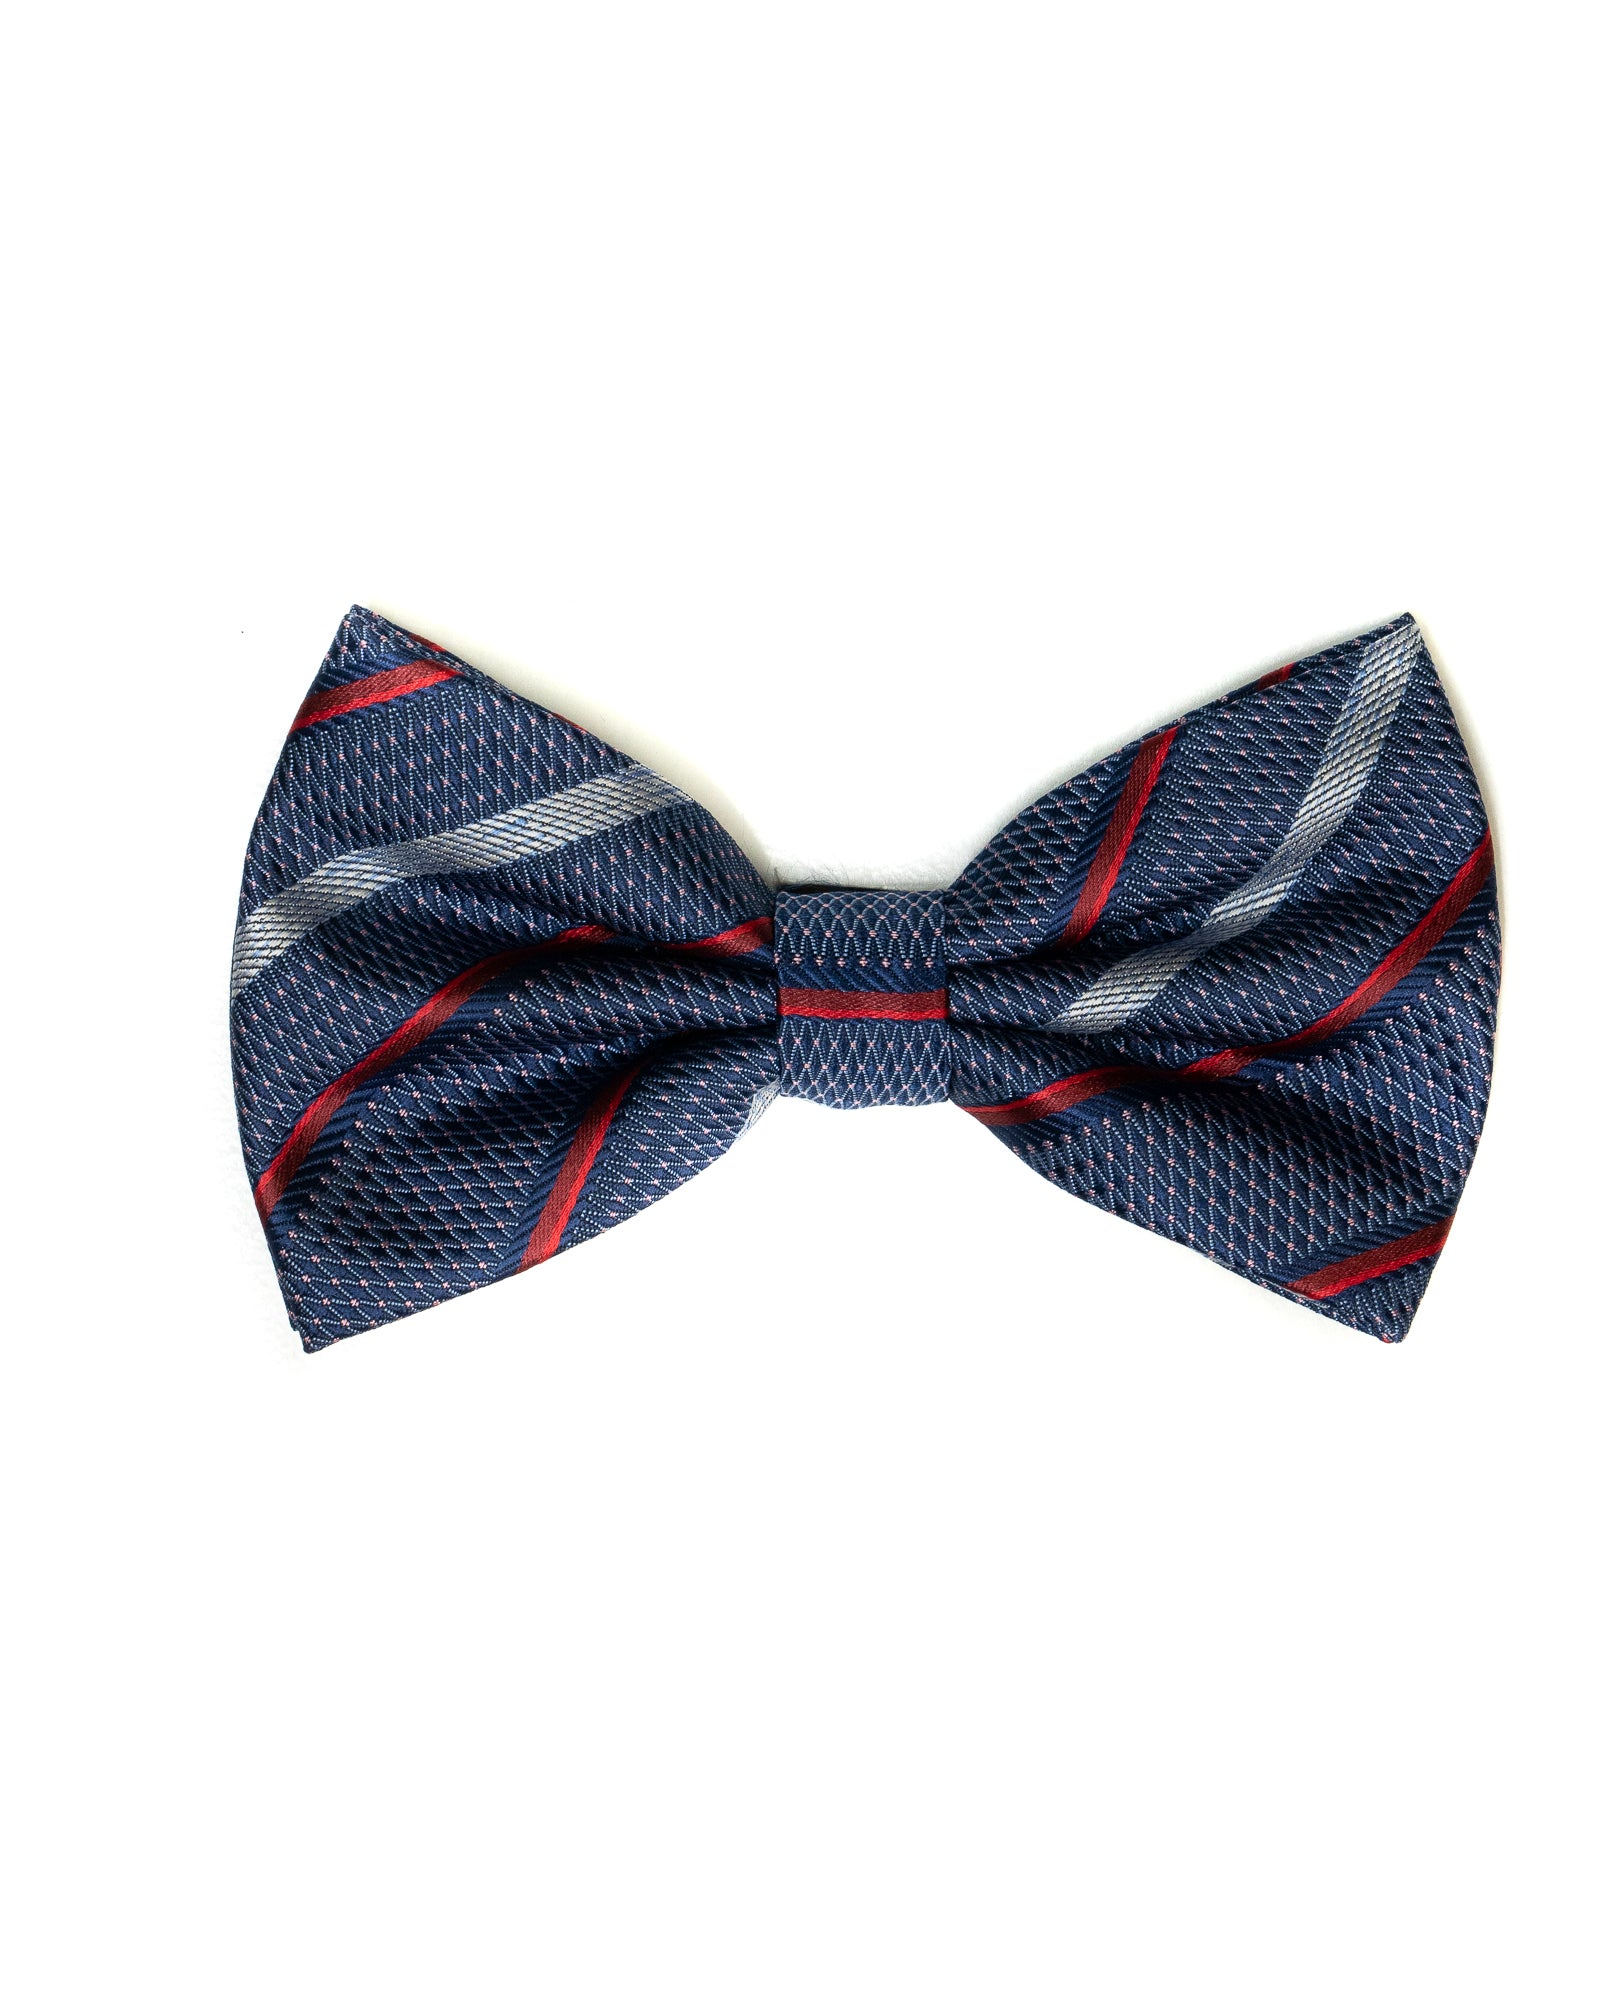 Bow Tie In Stripe Pattern Blue & Red - Rainwater's Men's Clothing and Tuxedo Rental